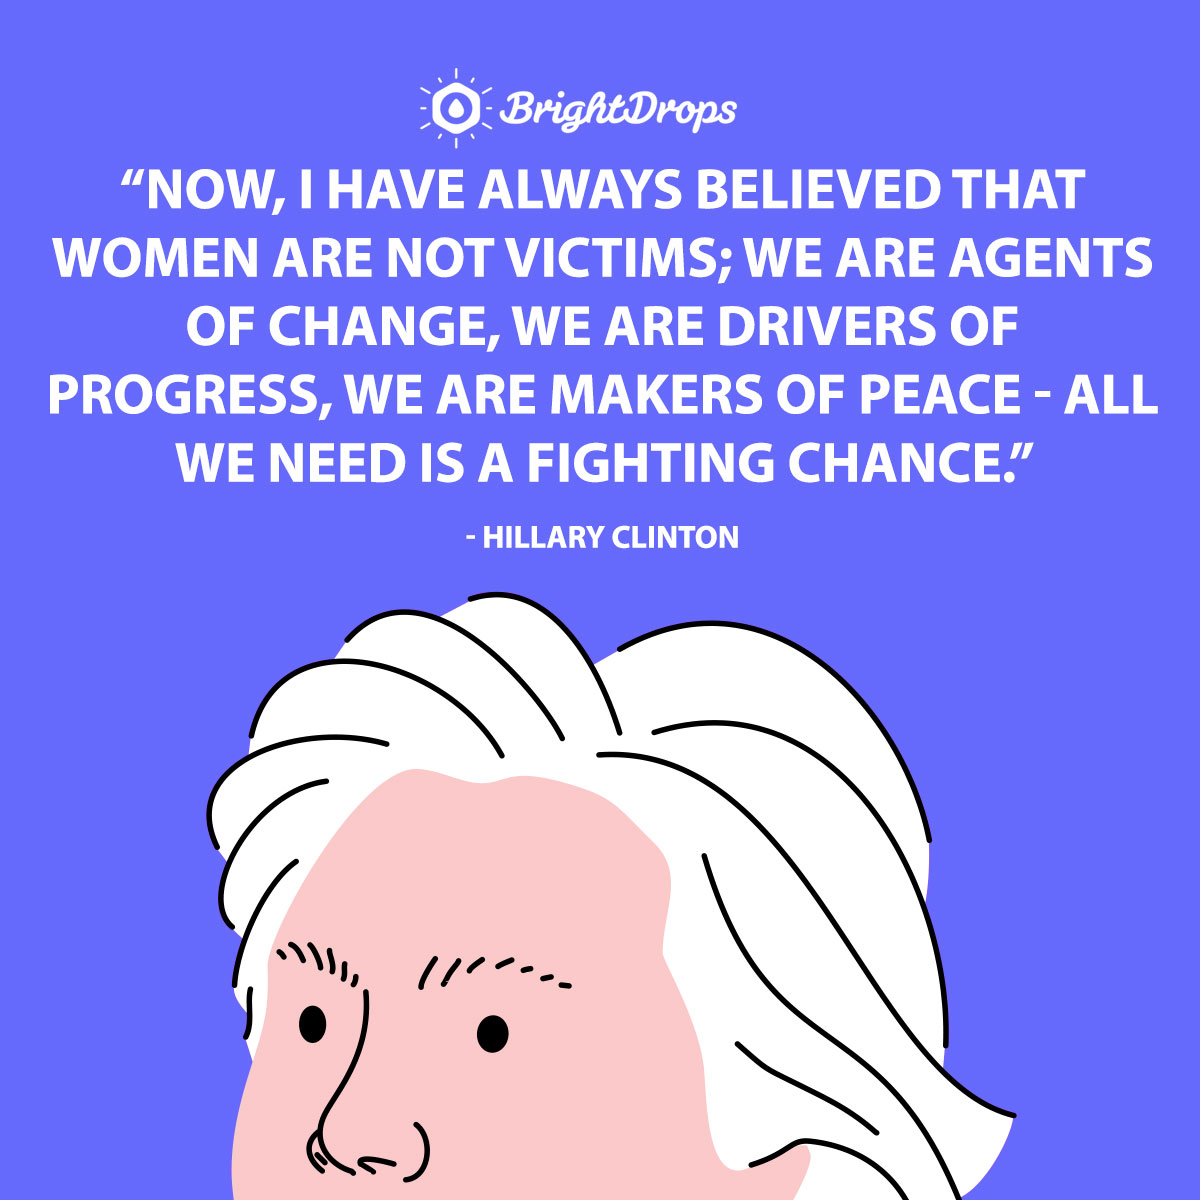 Now, I have always believed that women are not victims; we are agents of change, we are drivers of progress, we are makers of peace - all we need is a fighting chance.